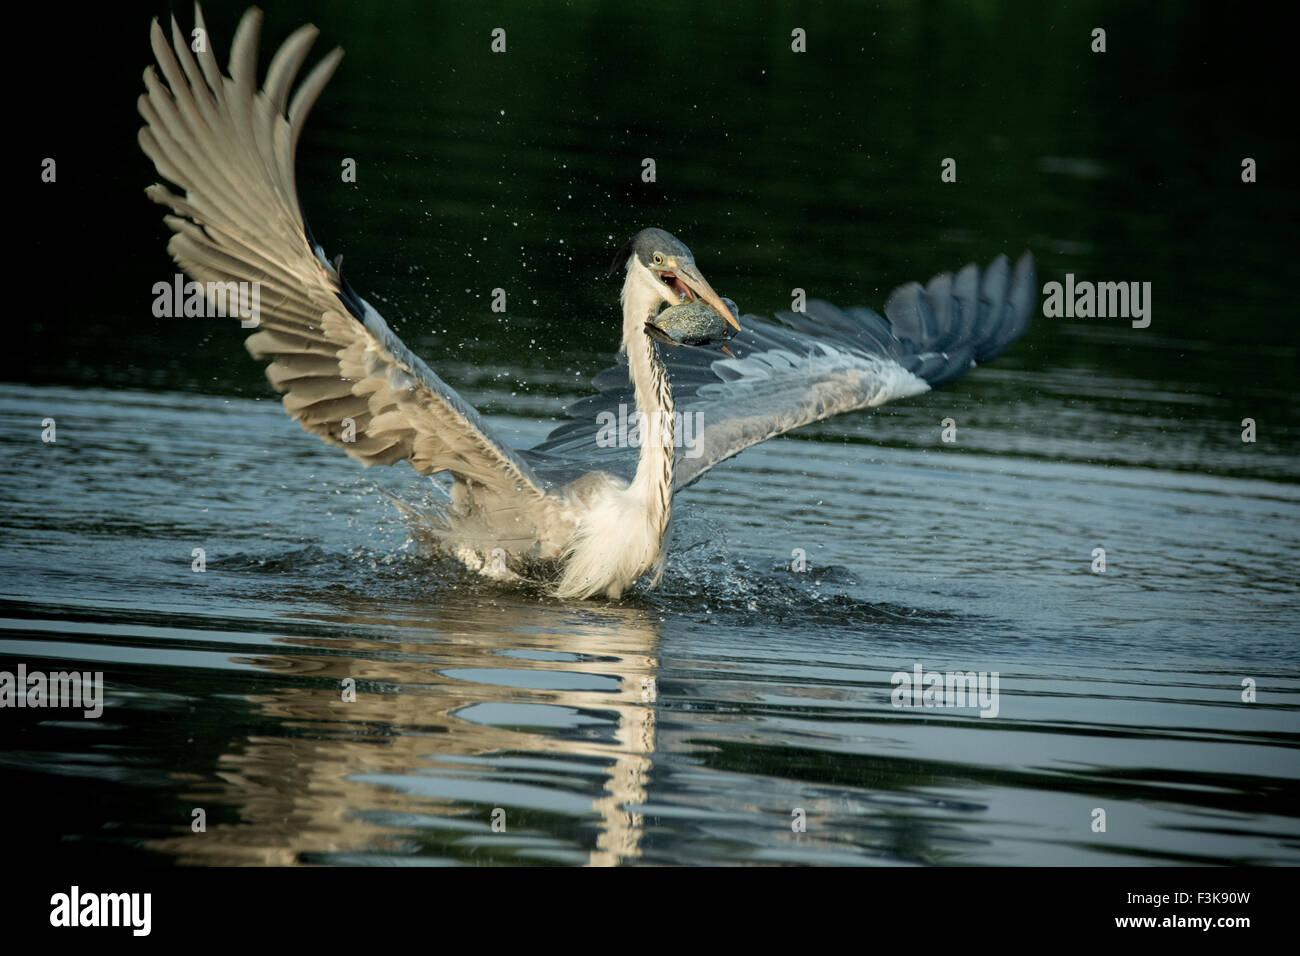 Cocoi Heron or White-necked Heron, Ardea cocoi, wings outspread, a fish in its beak, in the Pantanal, Mato Grosso, Stock Photo